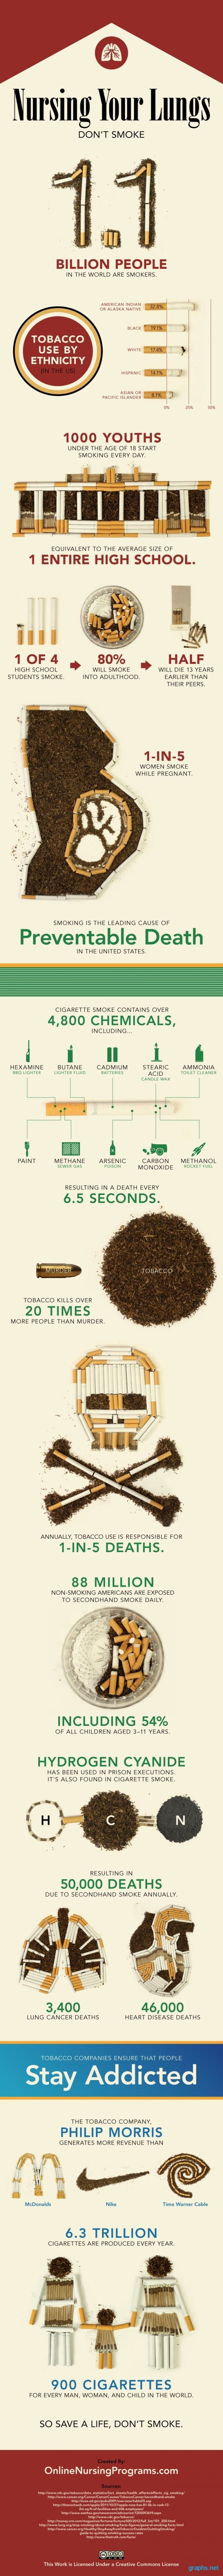 cigarette smoking facts